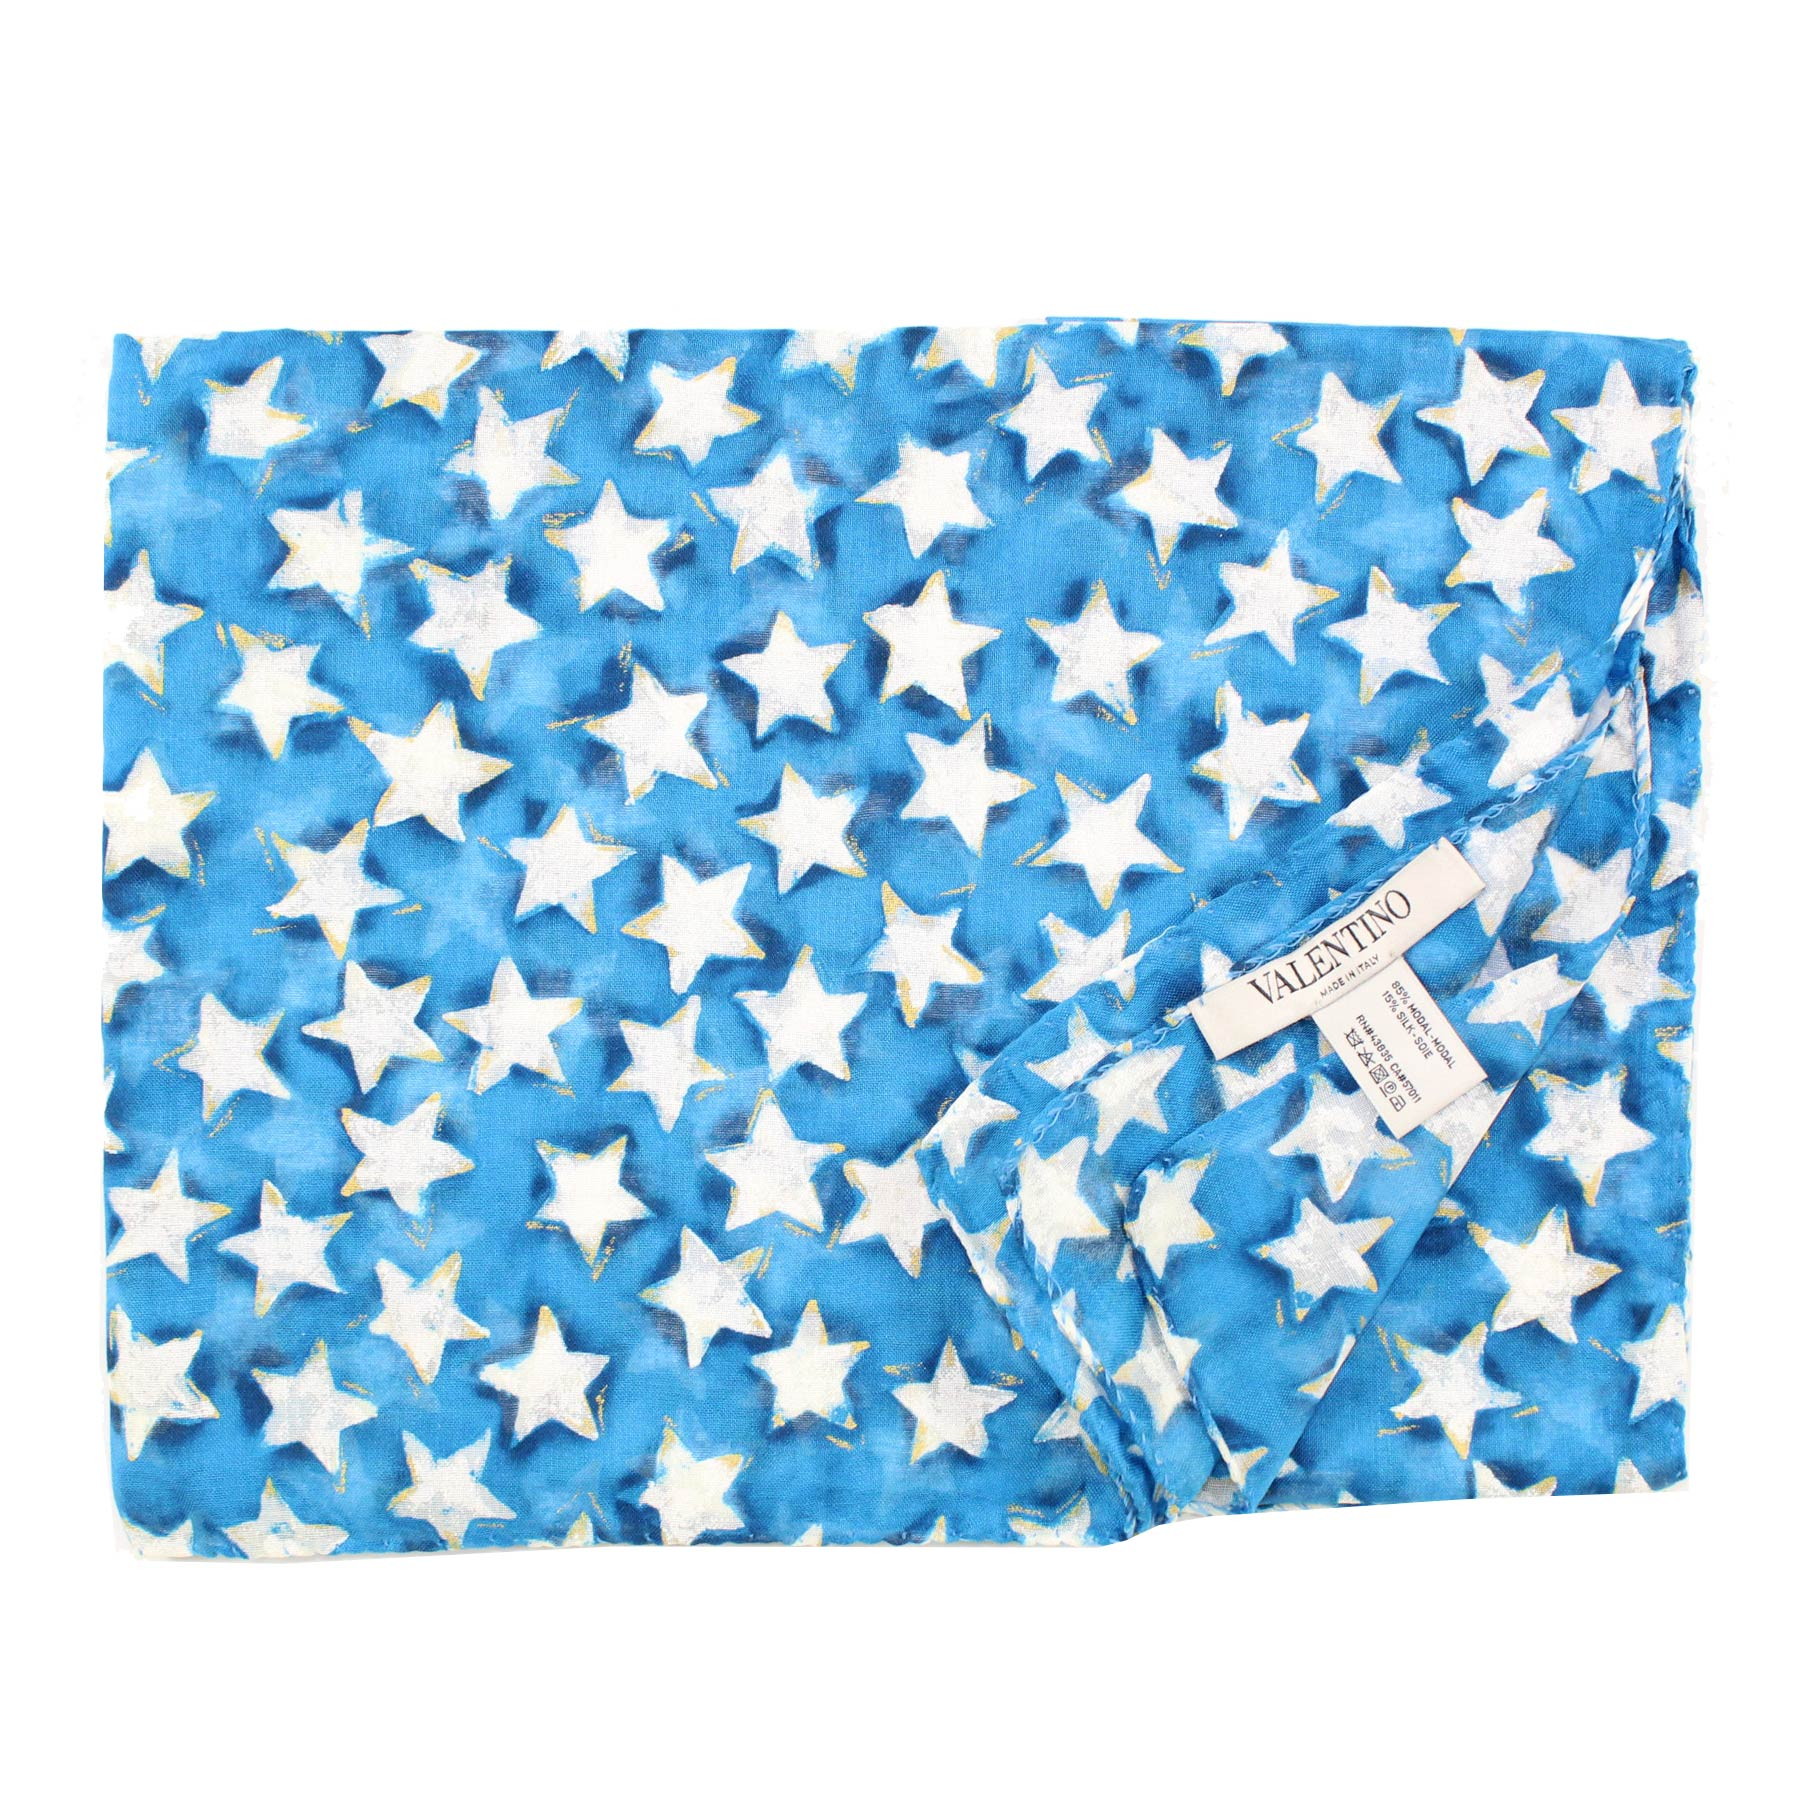 Valentino Scarf White Aqua Blue Stars - Extra Large Wrap REDUCED - FINAL SALE